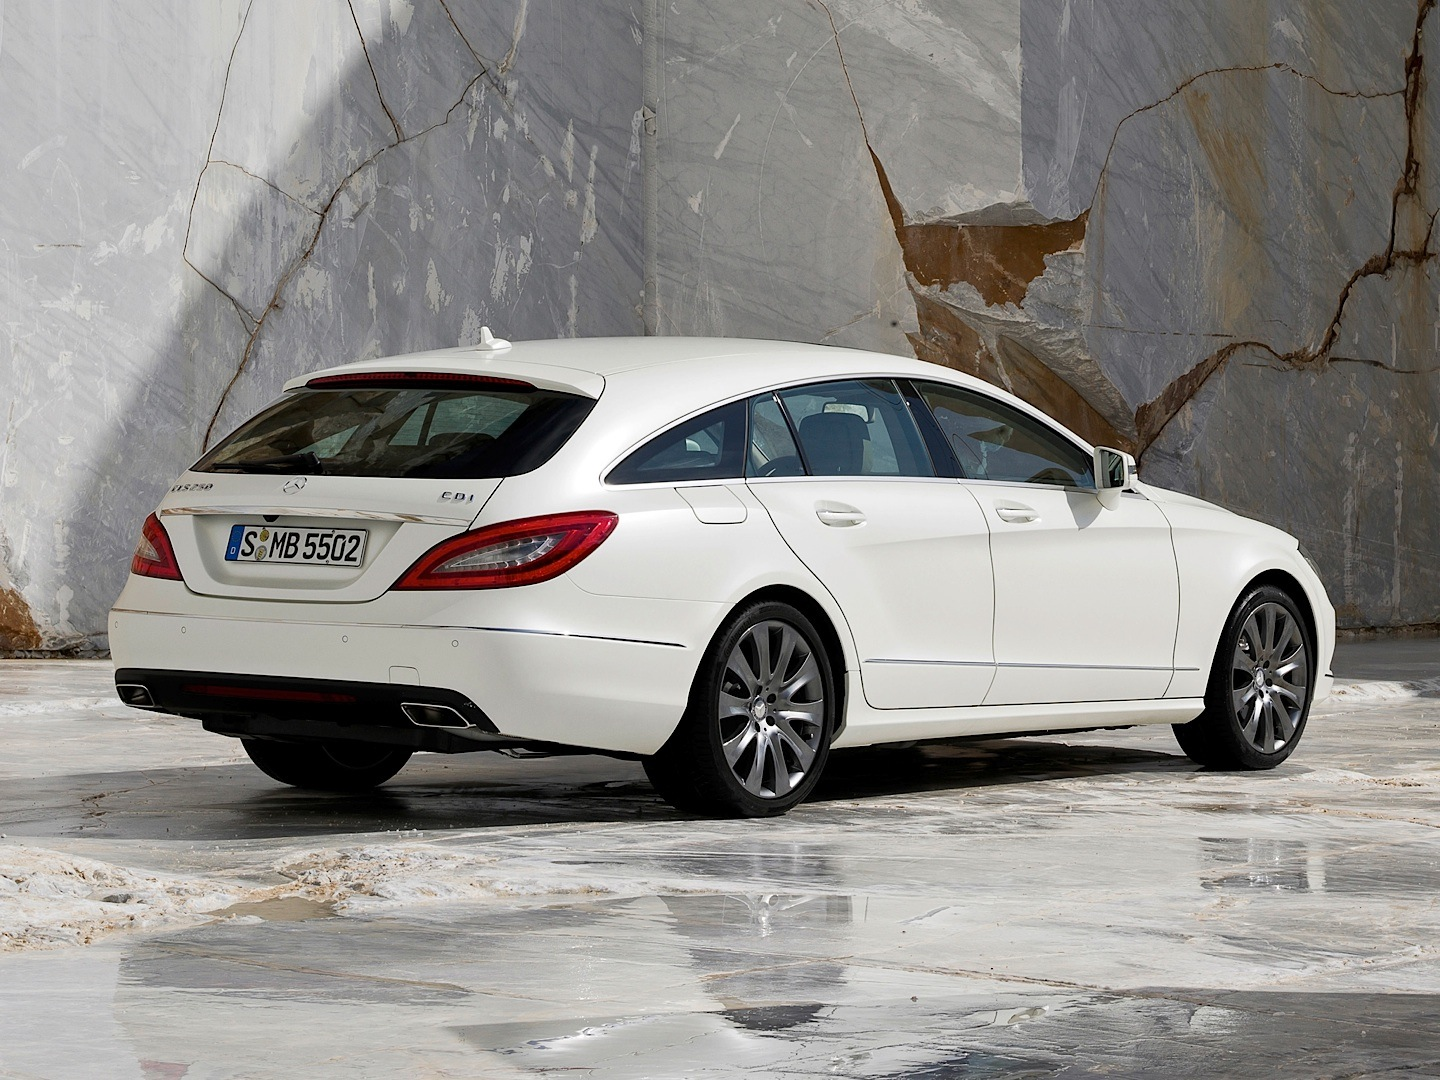 cls 250 cdi shooting brake is not that slow autoevolution. Black Bedroom Furniture Sets. Home Design Ideas